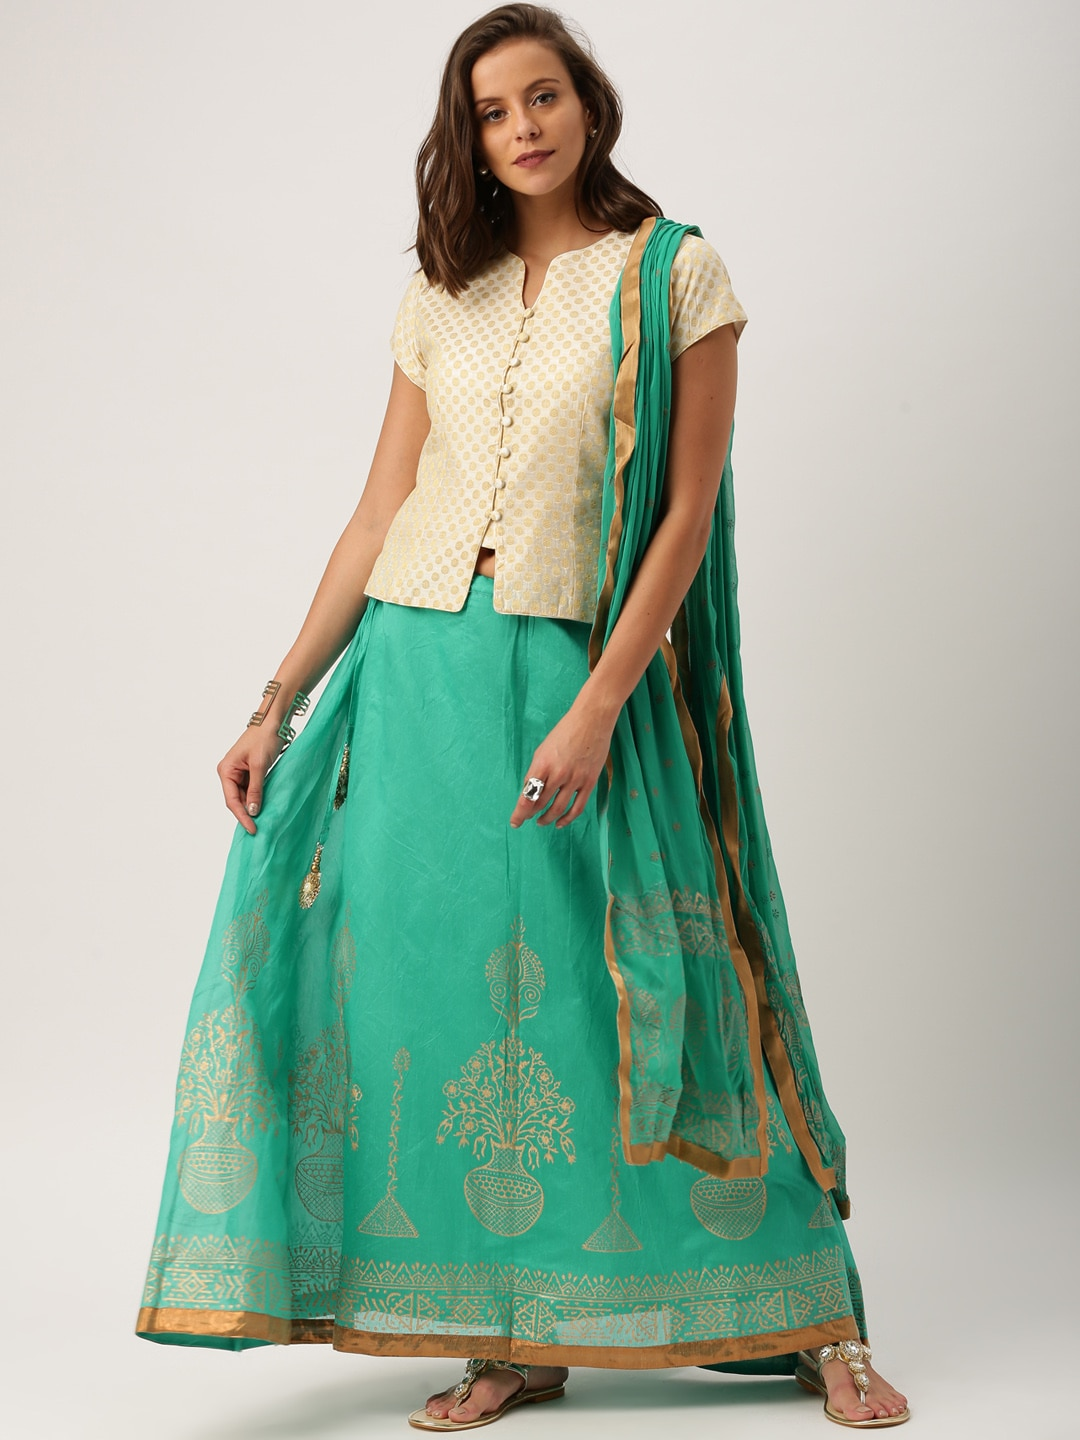 IMARA Gold-Toned & Green Lehenga Choli with Dupatta image